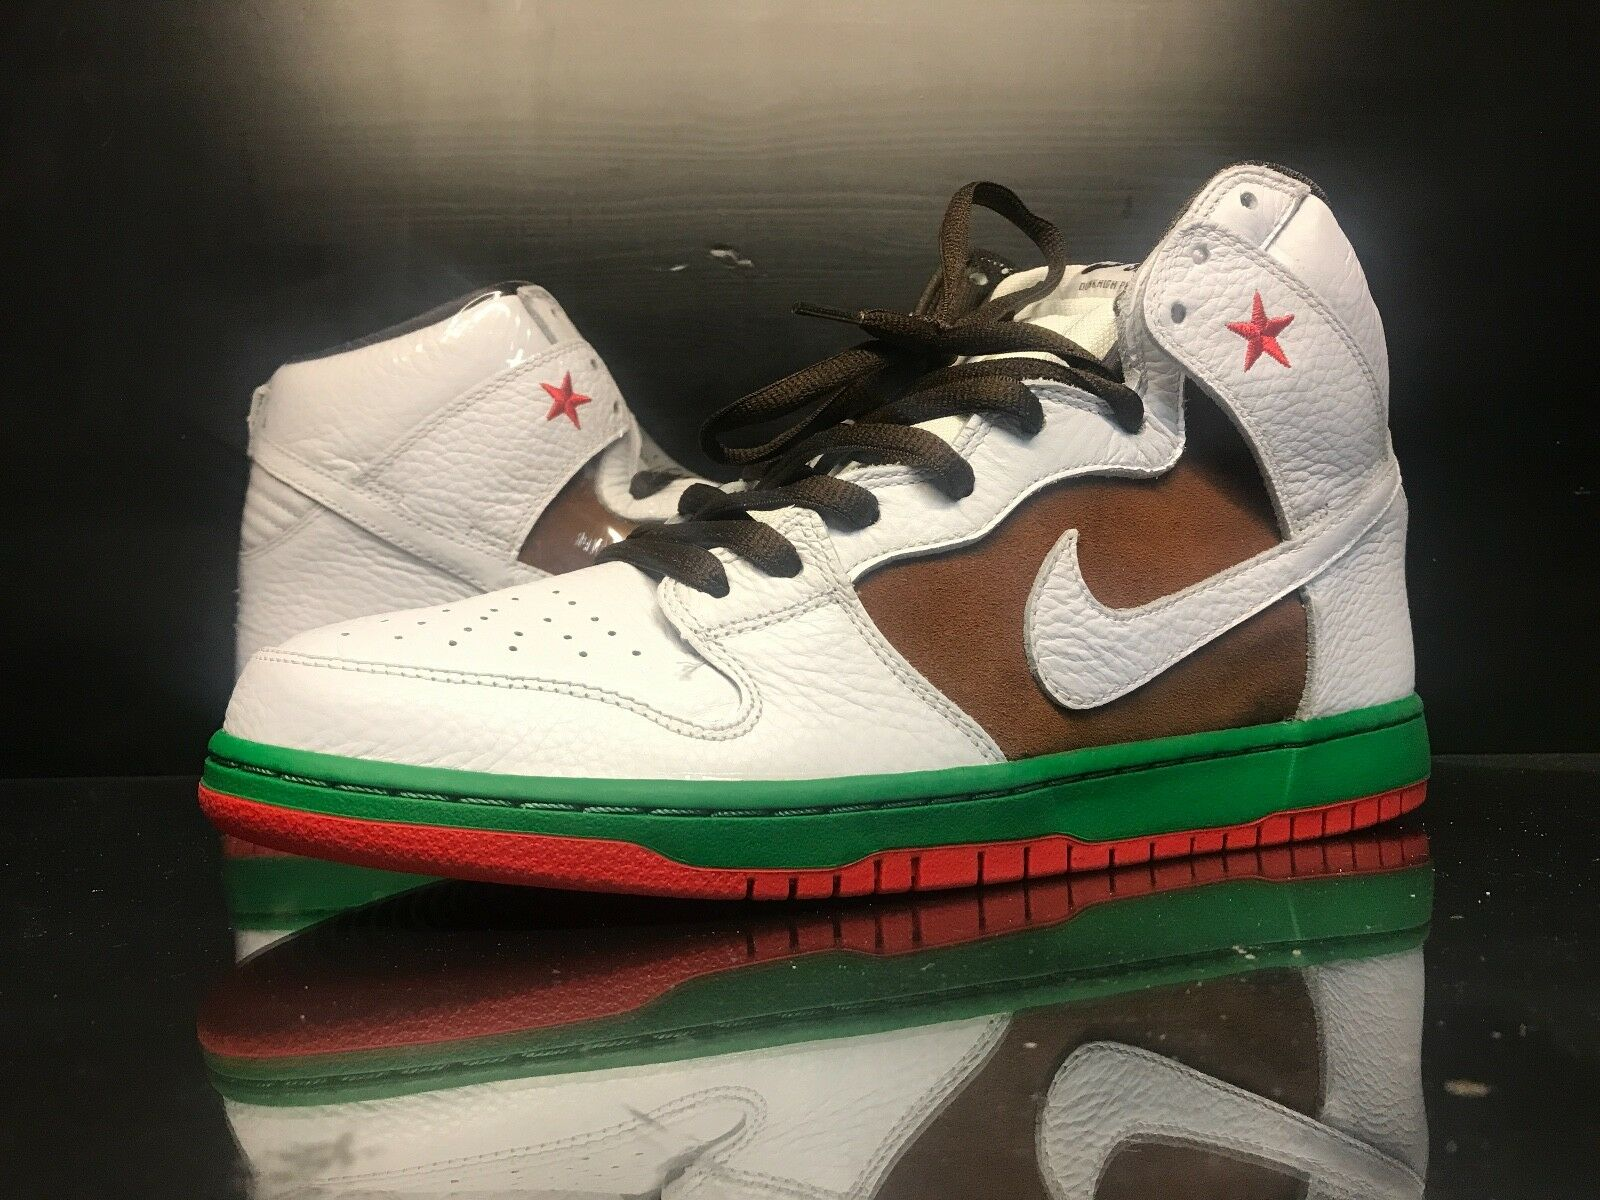 Nike Dunk SB High Cali - 14